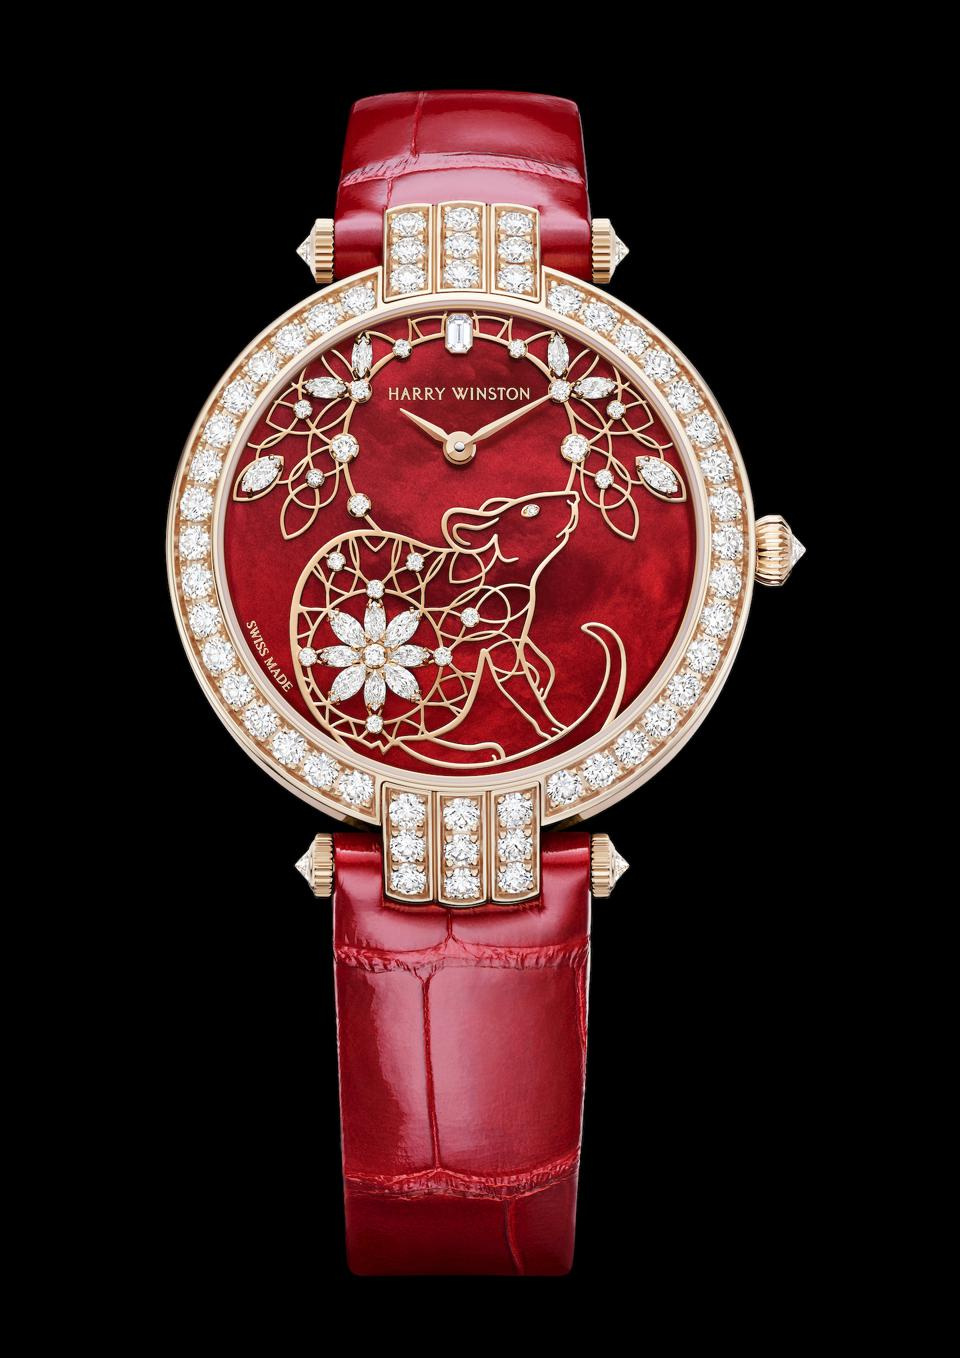 Harry Winston Unveils Chinese New Year Watch With More Than 100 Diamonds